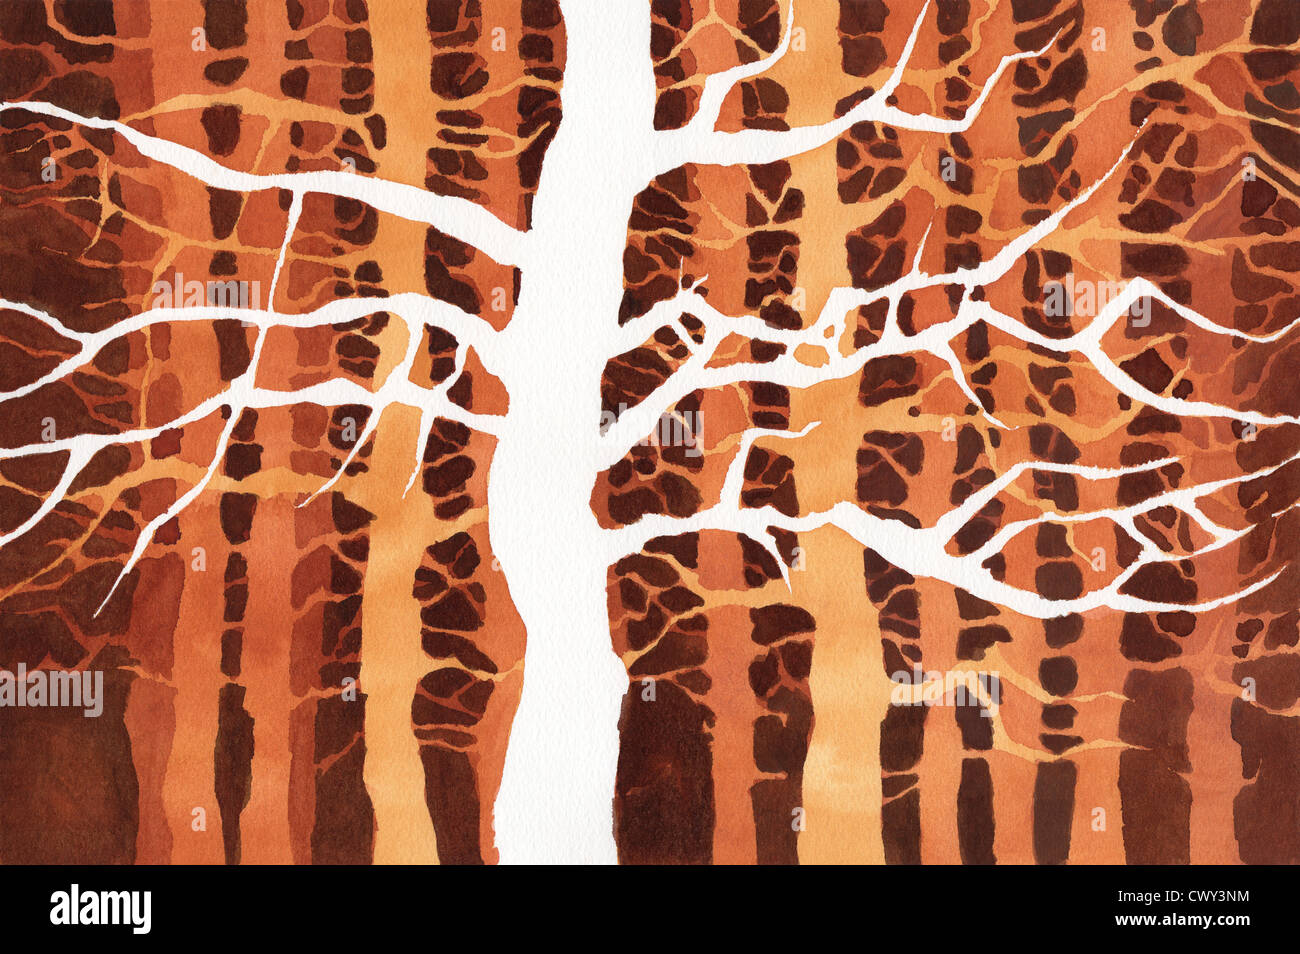 Painting of trees and branches on watercolor paper Stock Photo